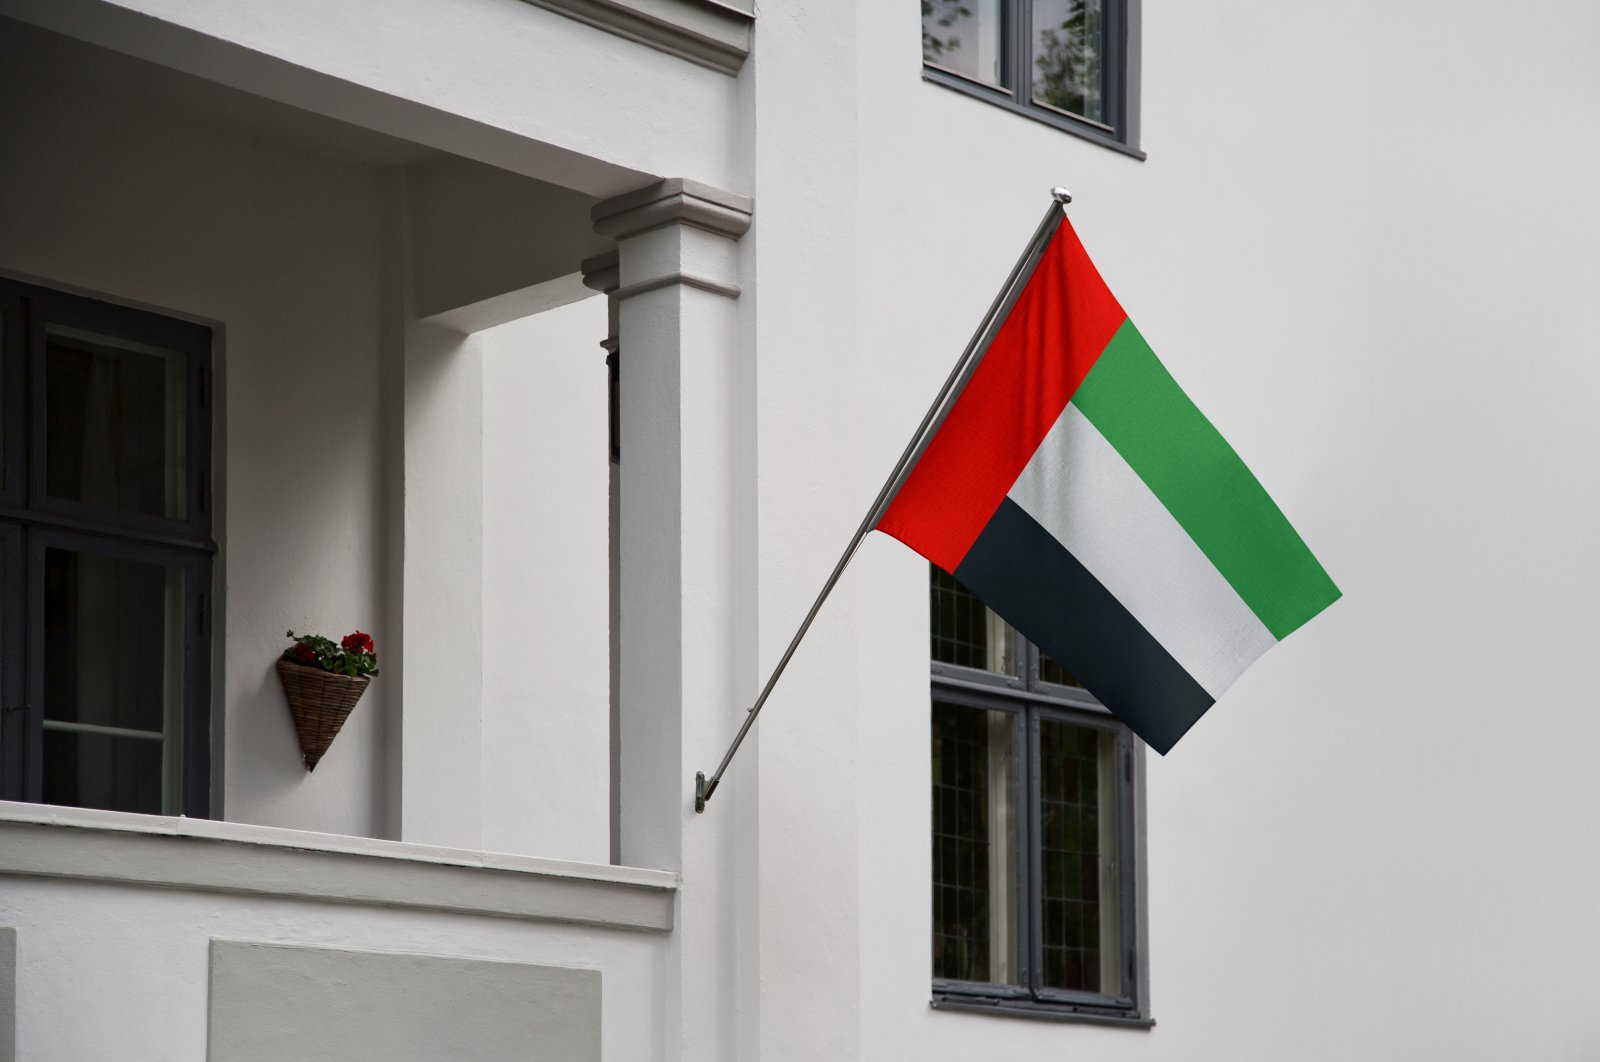 An undated photo shows the flag of the United Arab Emirates (UAE) hanging from a pole on a front door of a building. (Shutterstock)